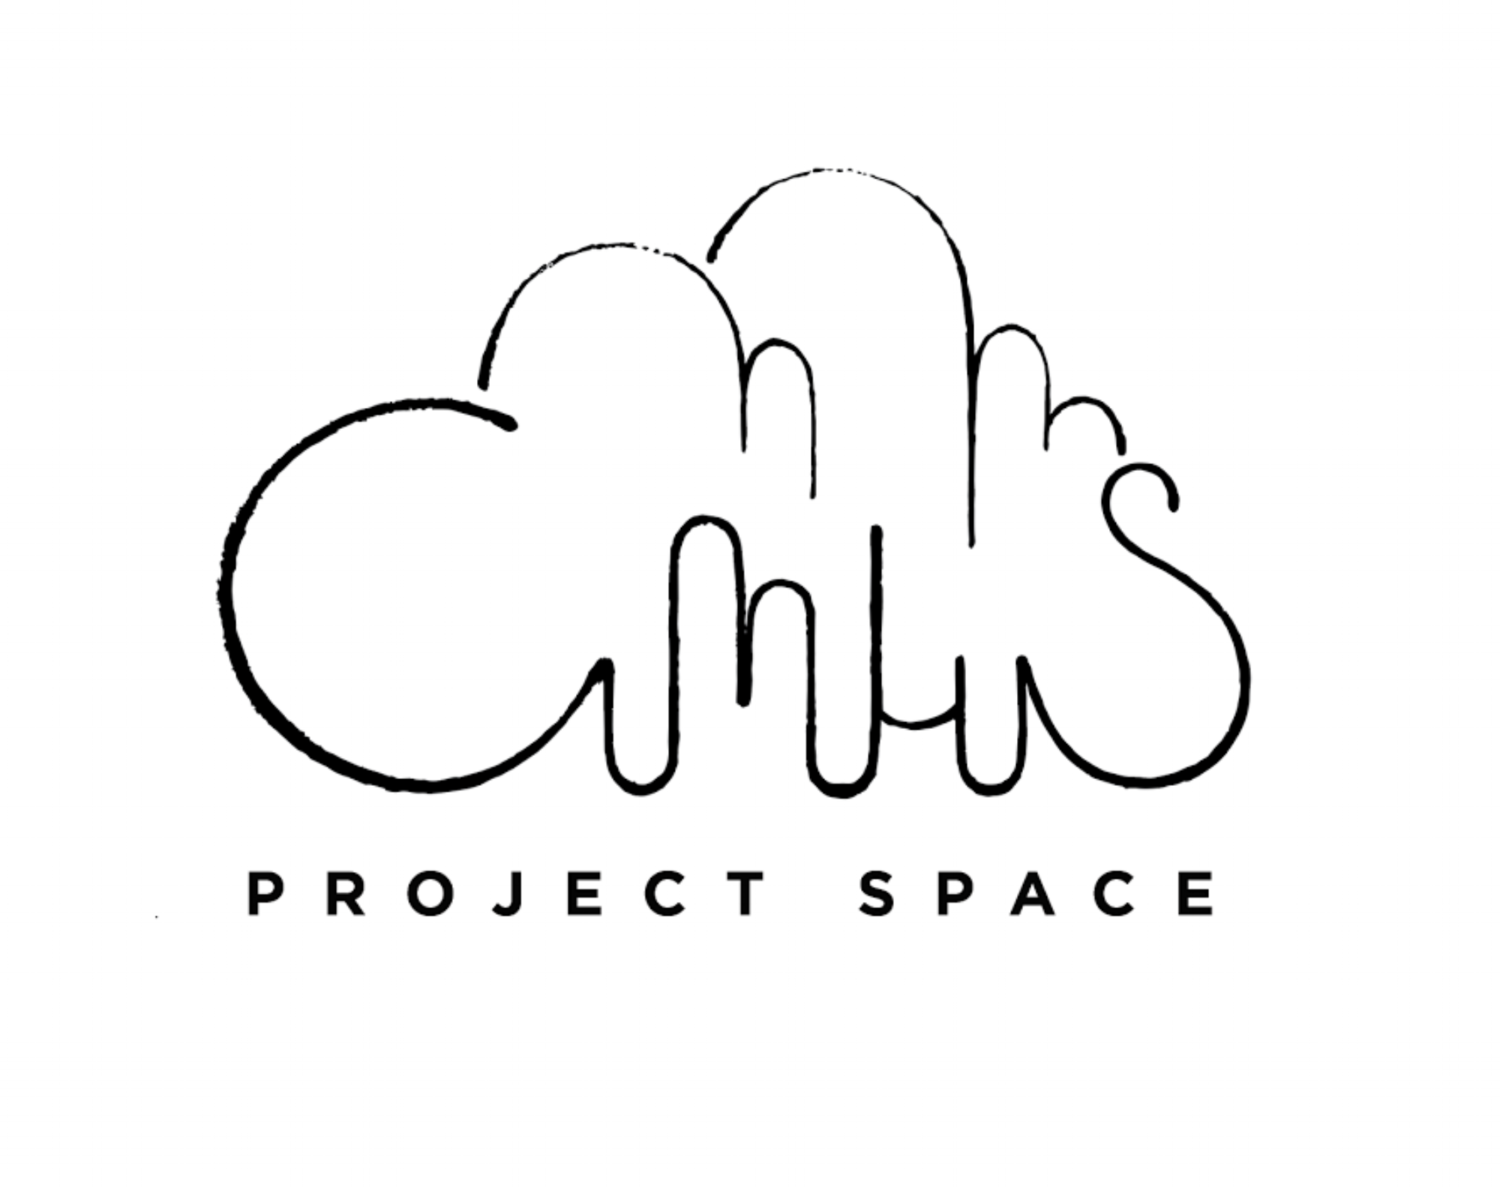 Cumulus Project Space